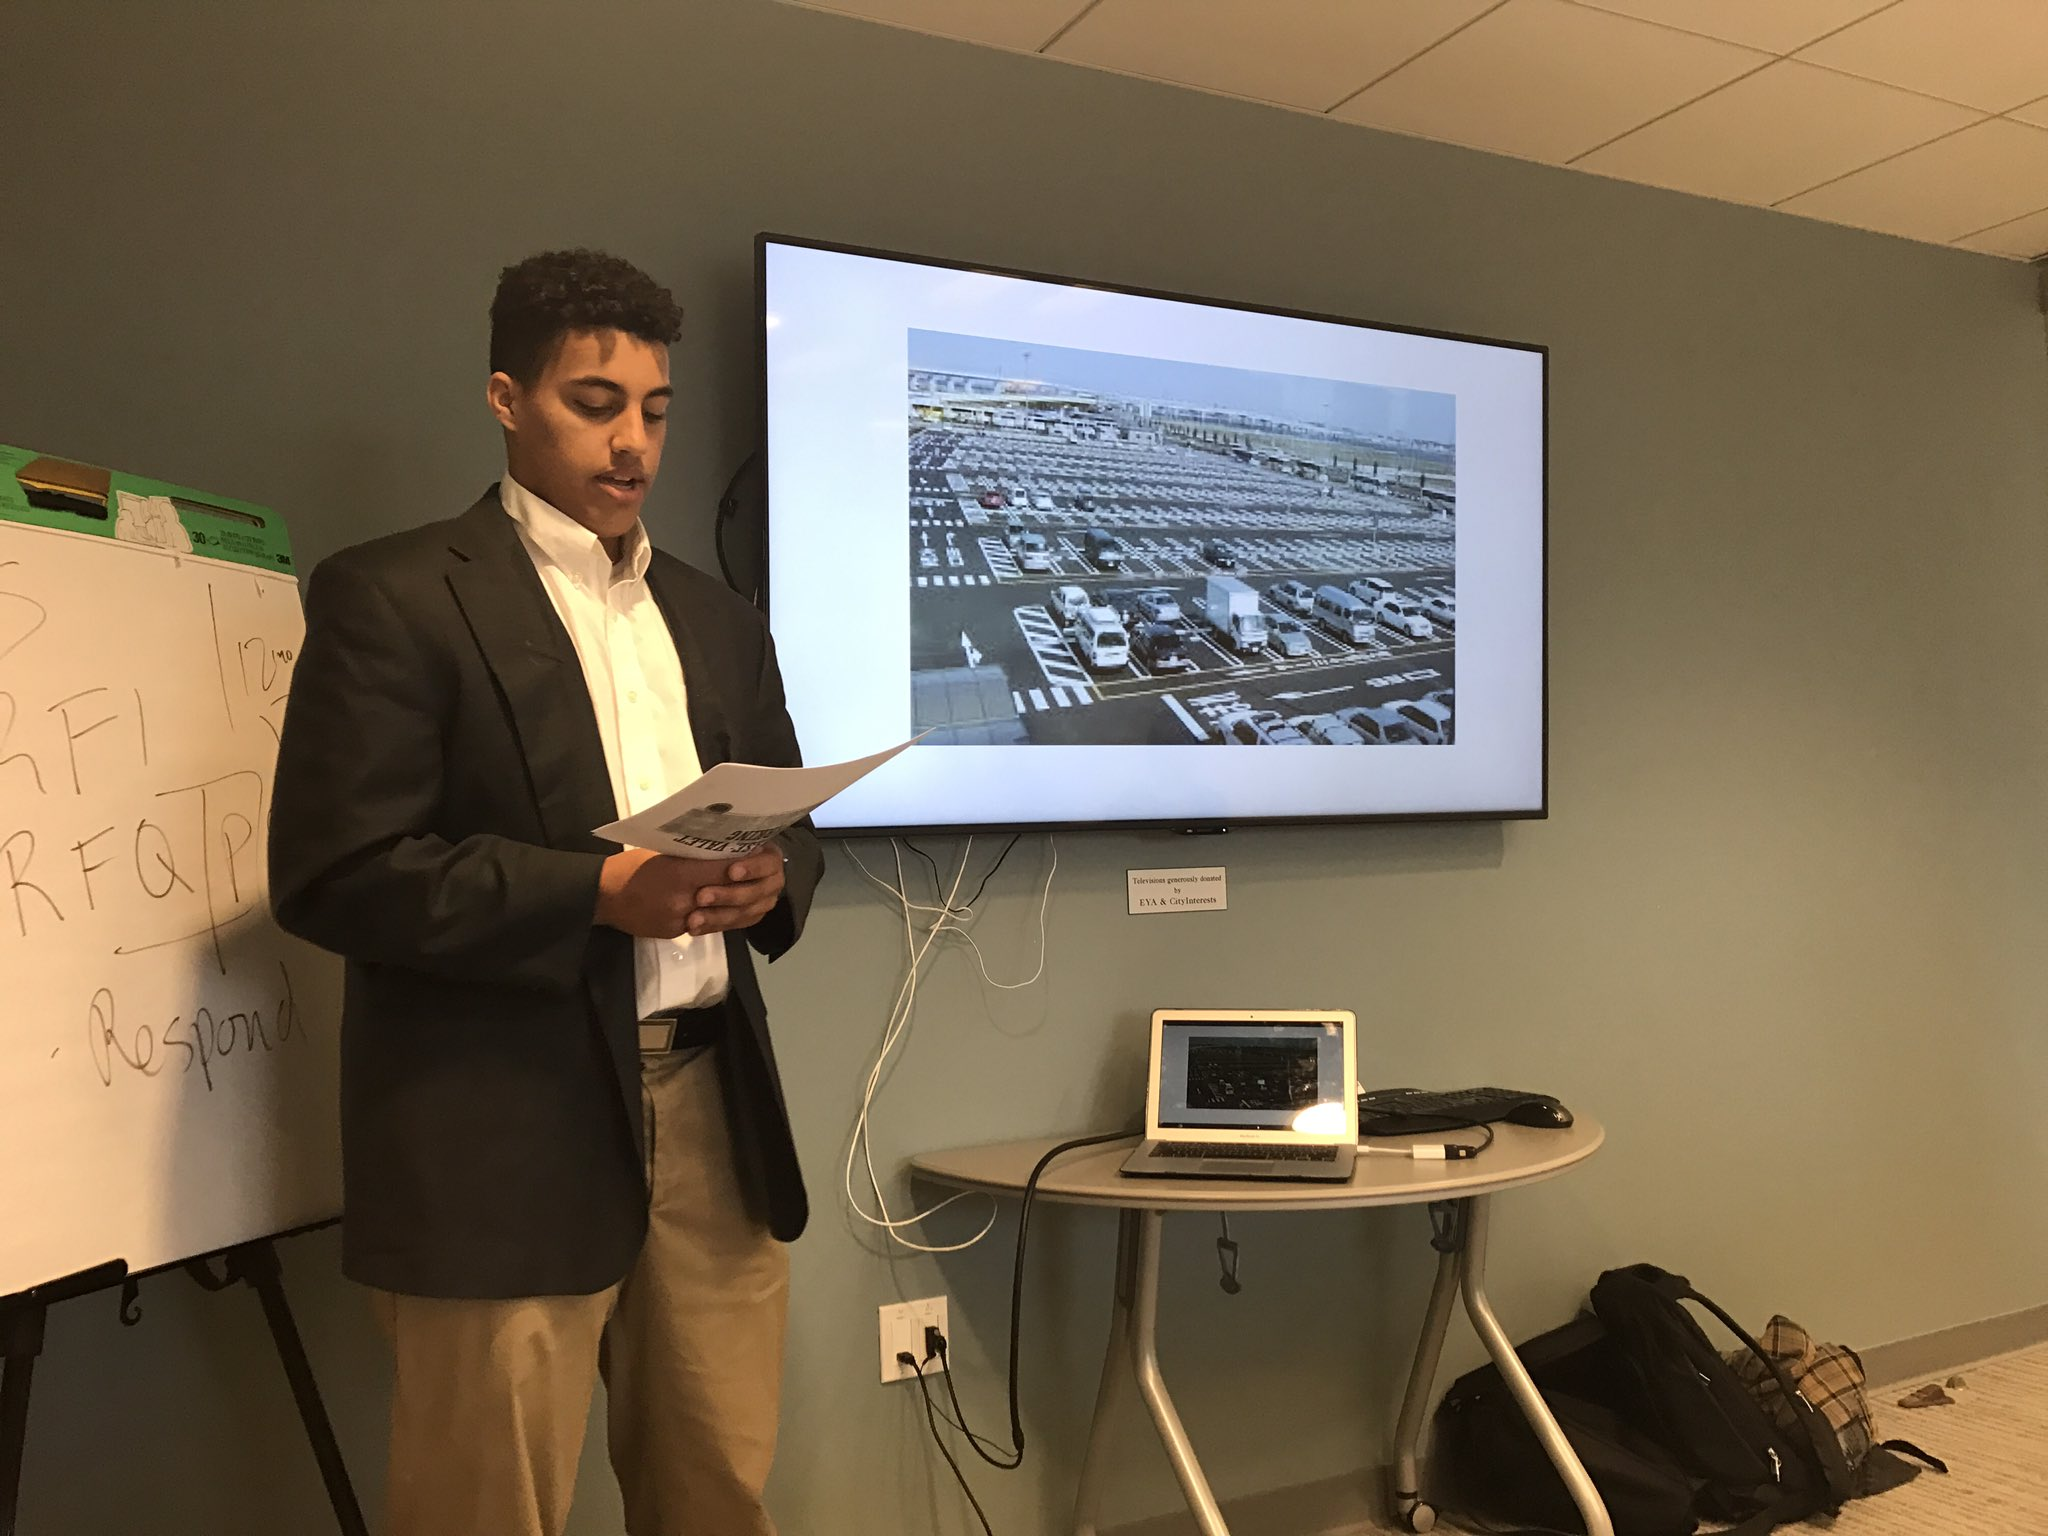 Solo pitch presenting a valet parking service for local airports. #myflinthill https://t.co/2z463NB9Jc